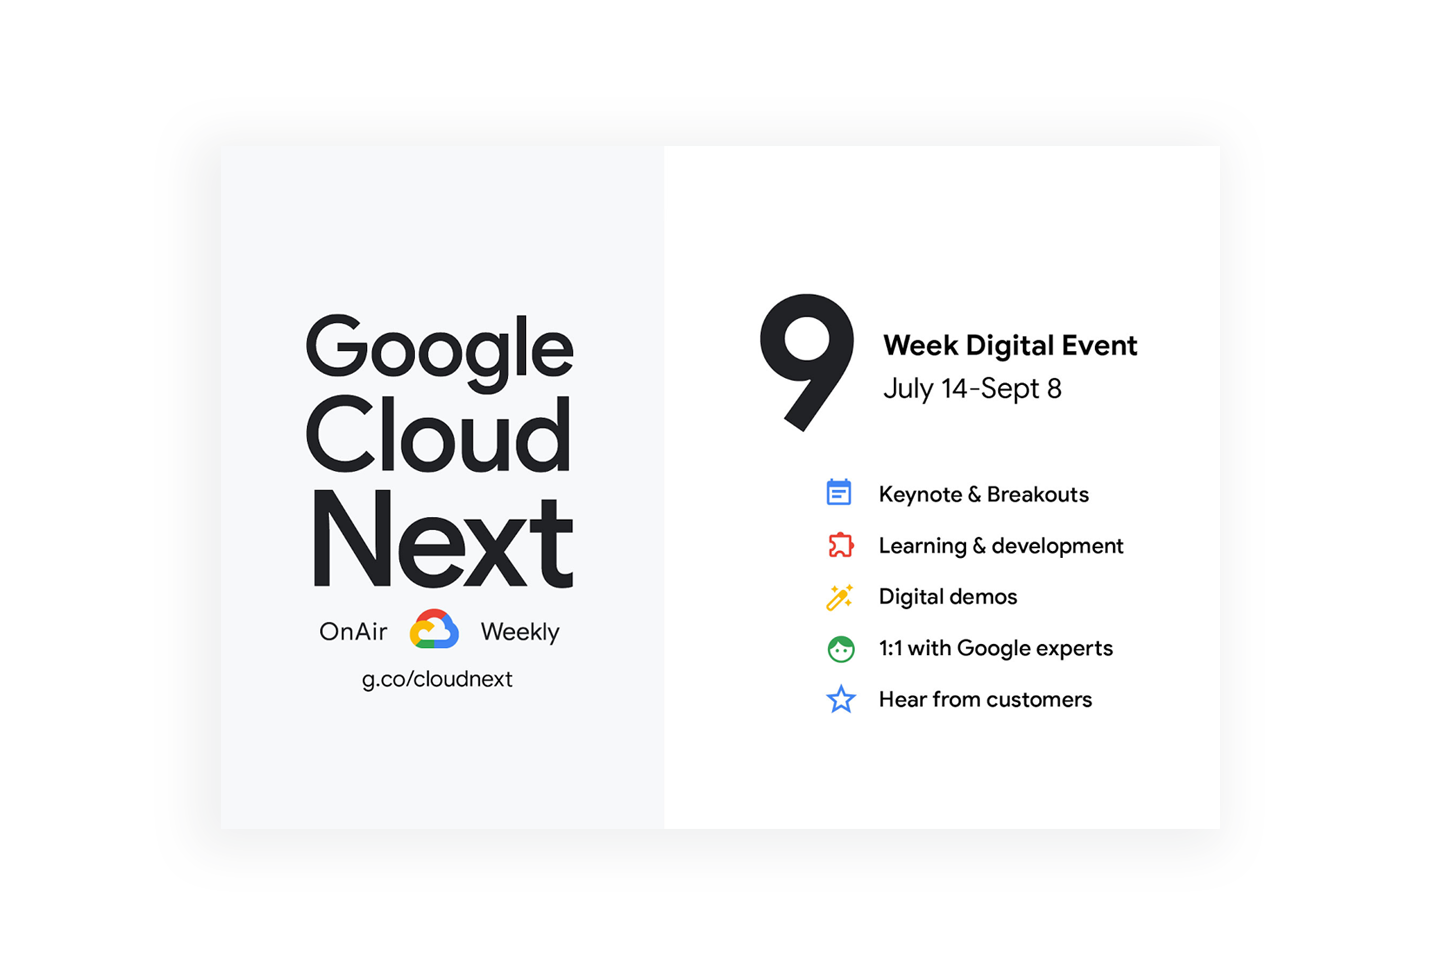 Google Next OnAir 2020: Productivity & Collaboration sessions